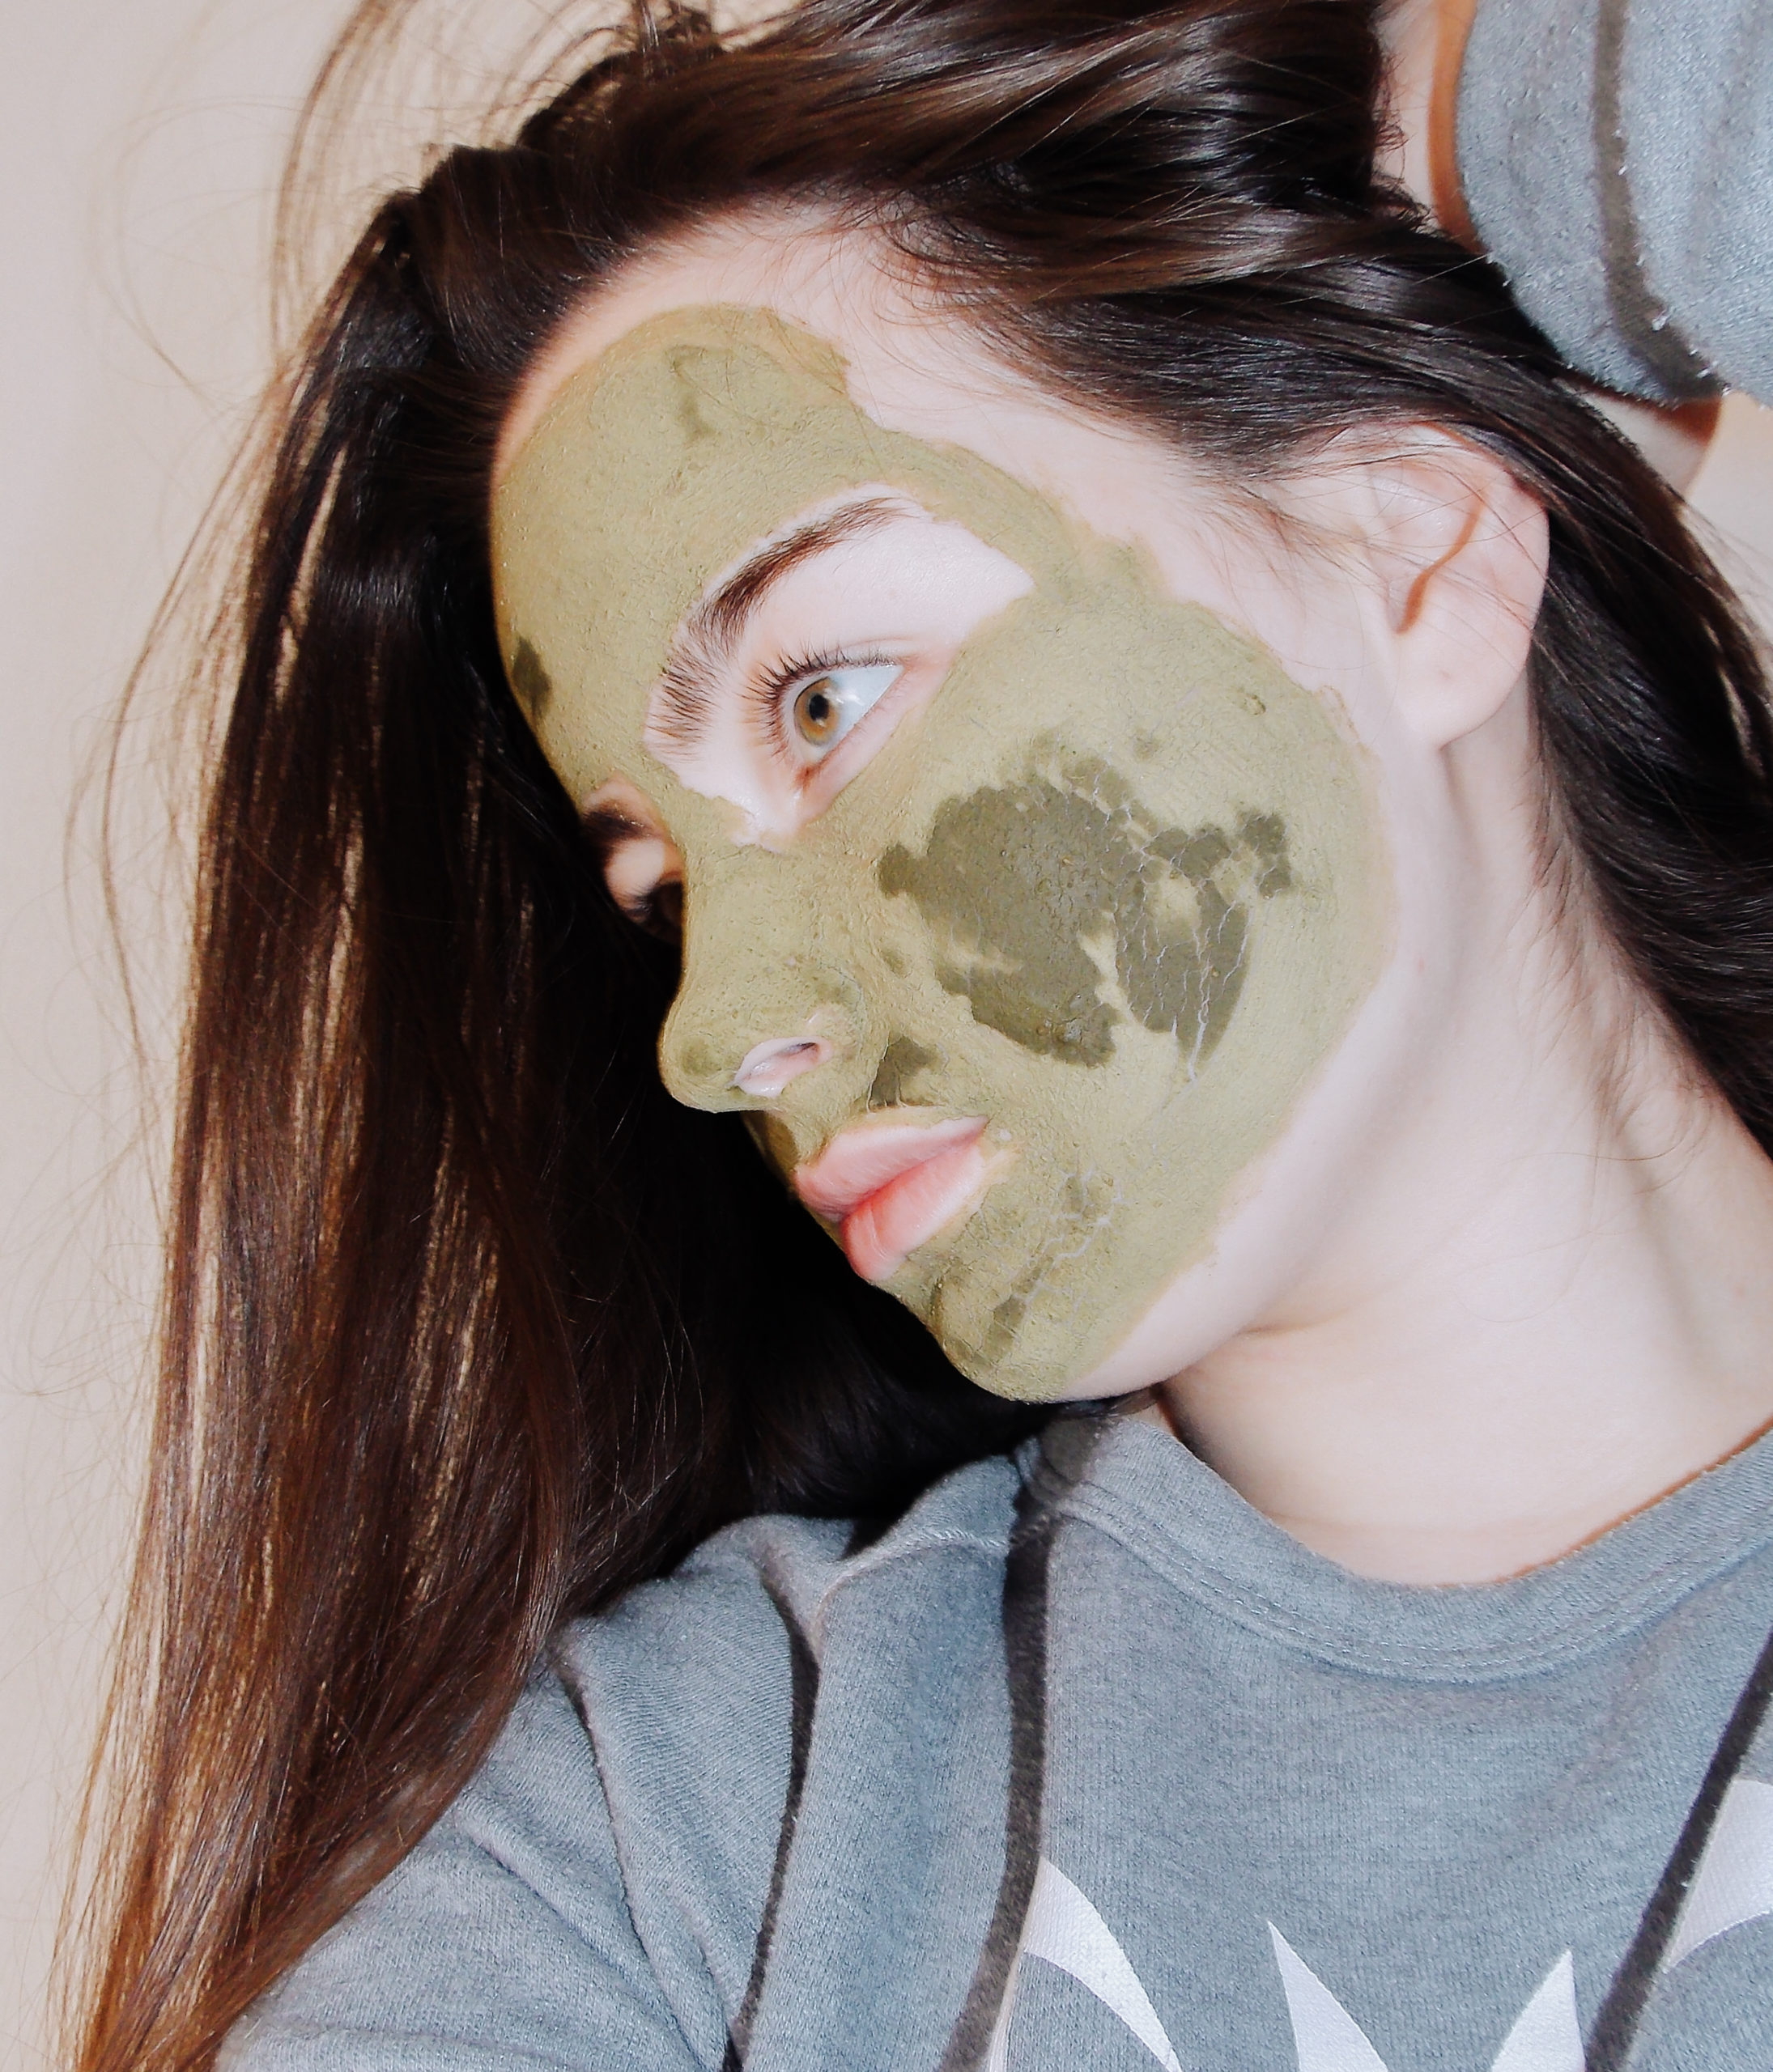 DiNatura Matcha & Neem Face Mask Recenzija / Review